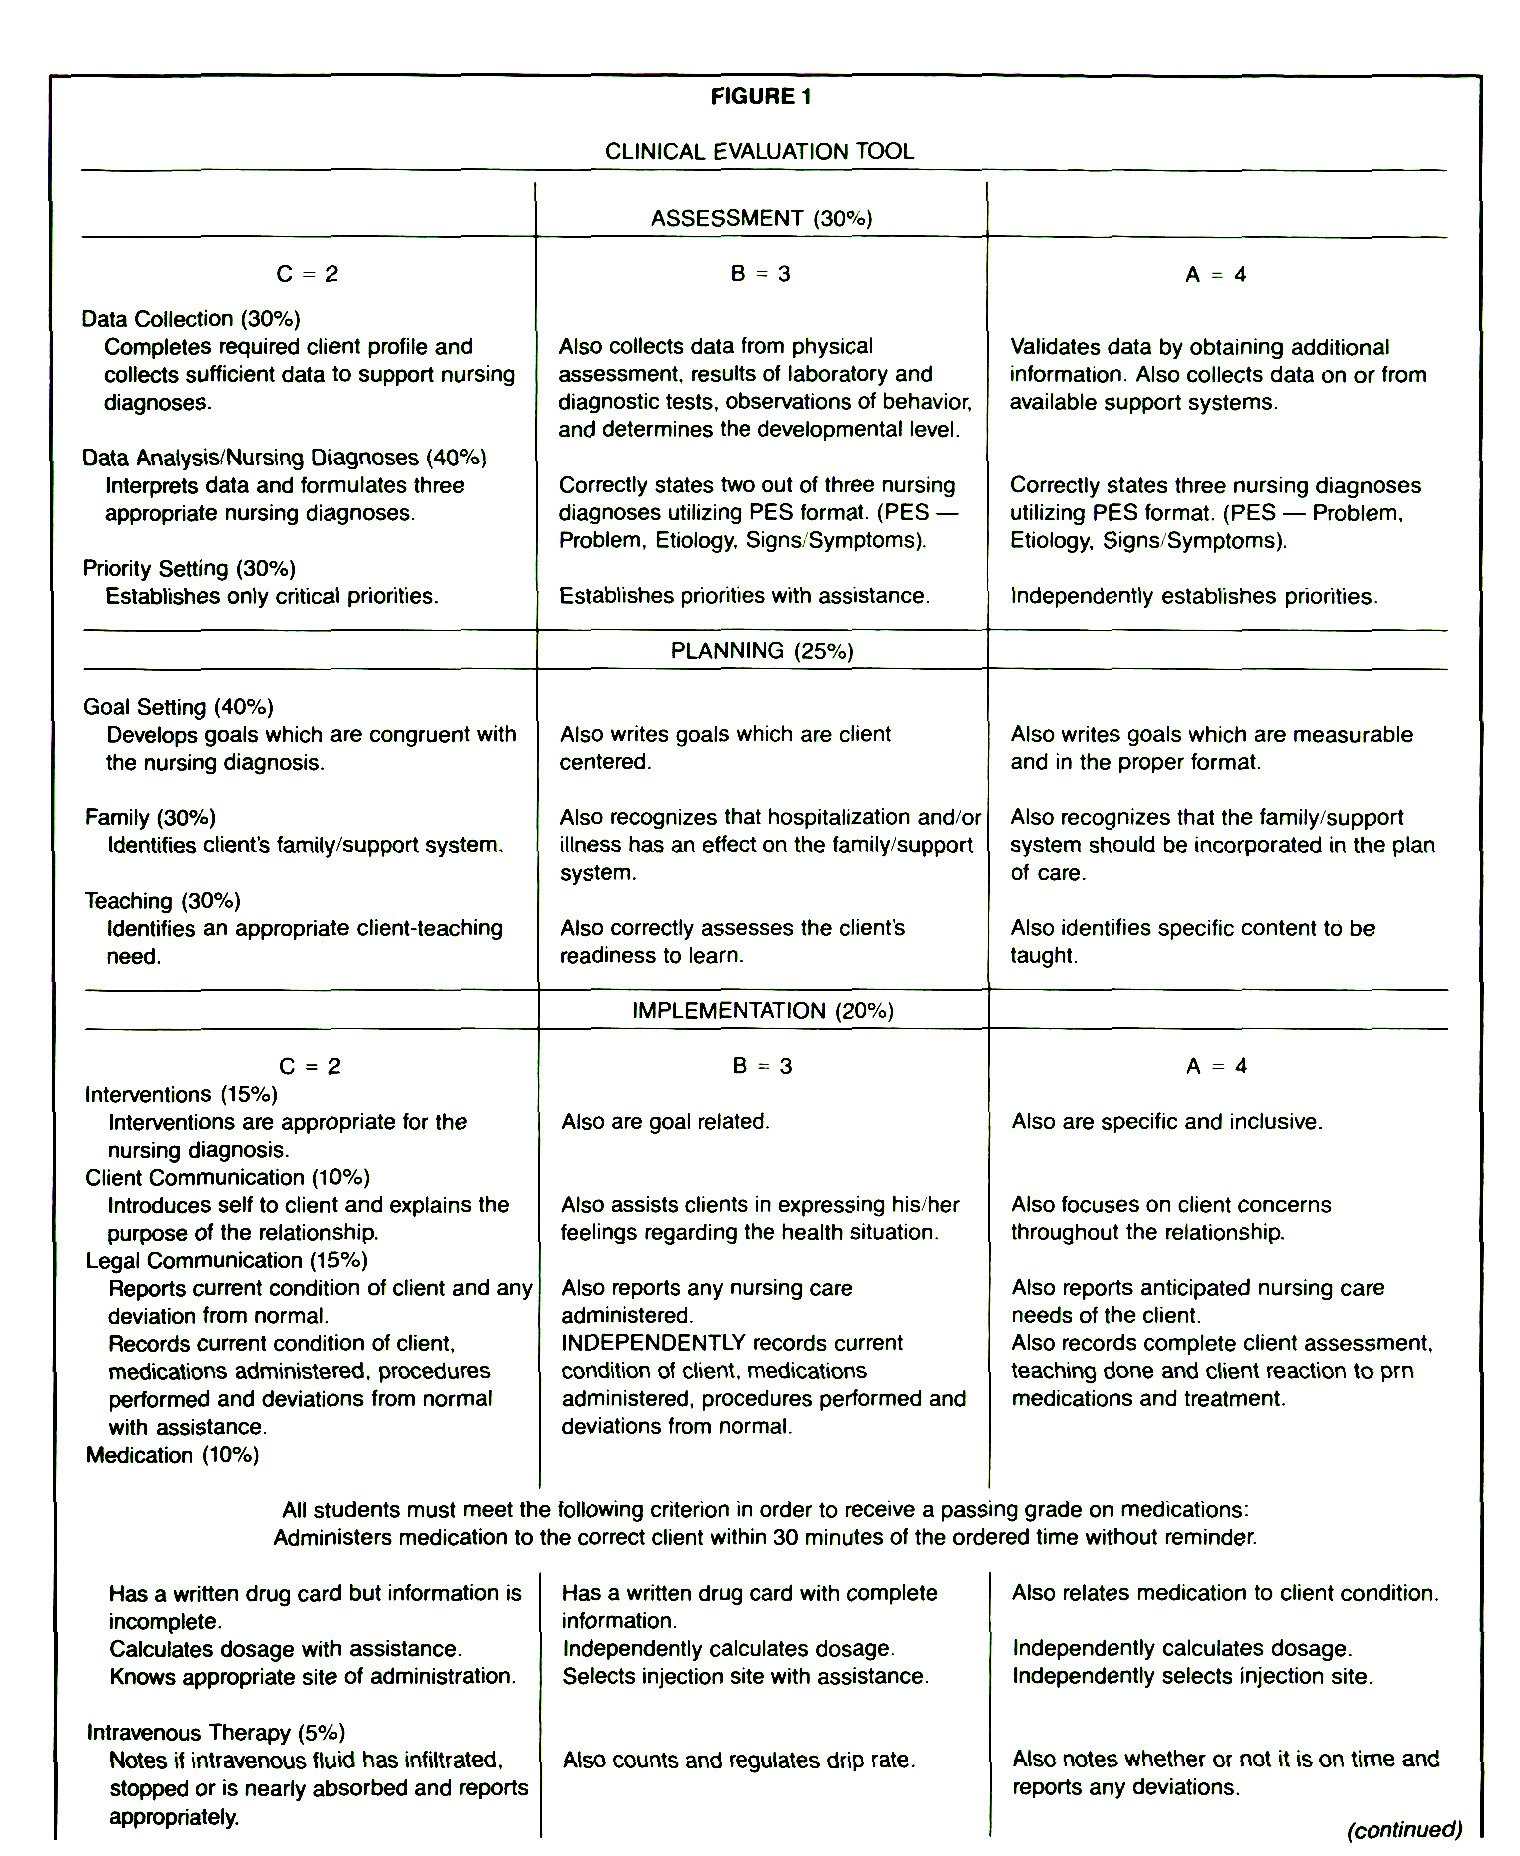 FIGURE 1CLINICAL EVALUATION TOOL